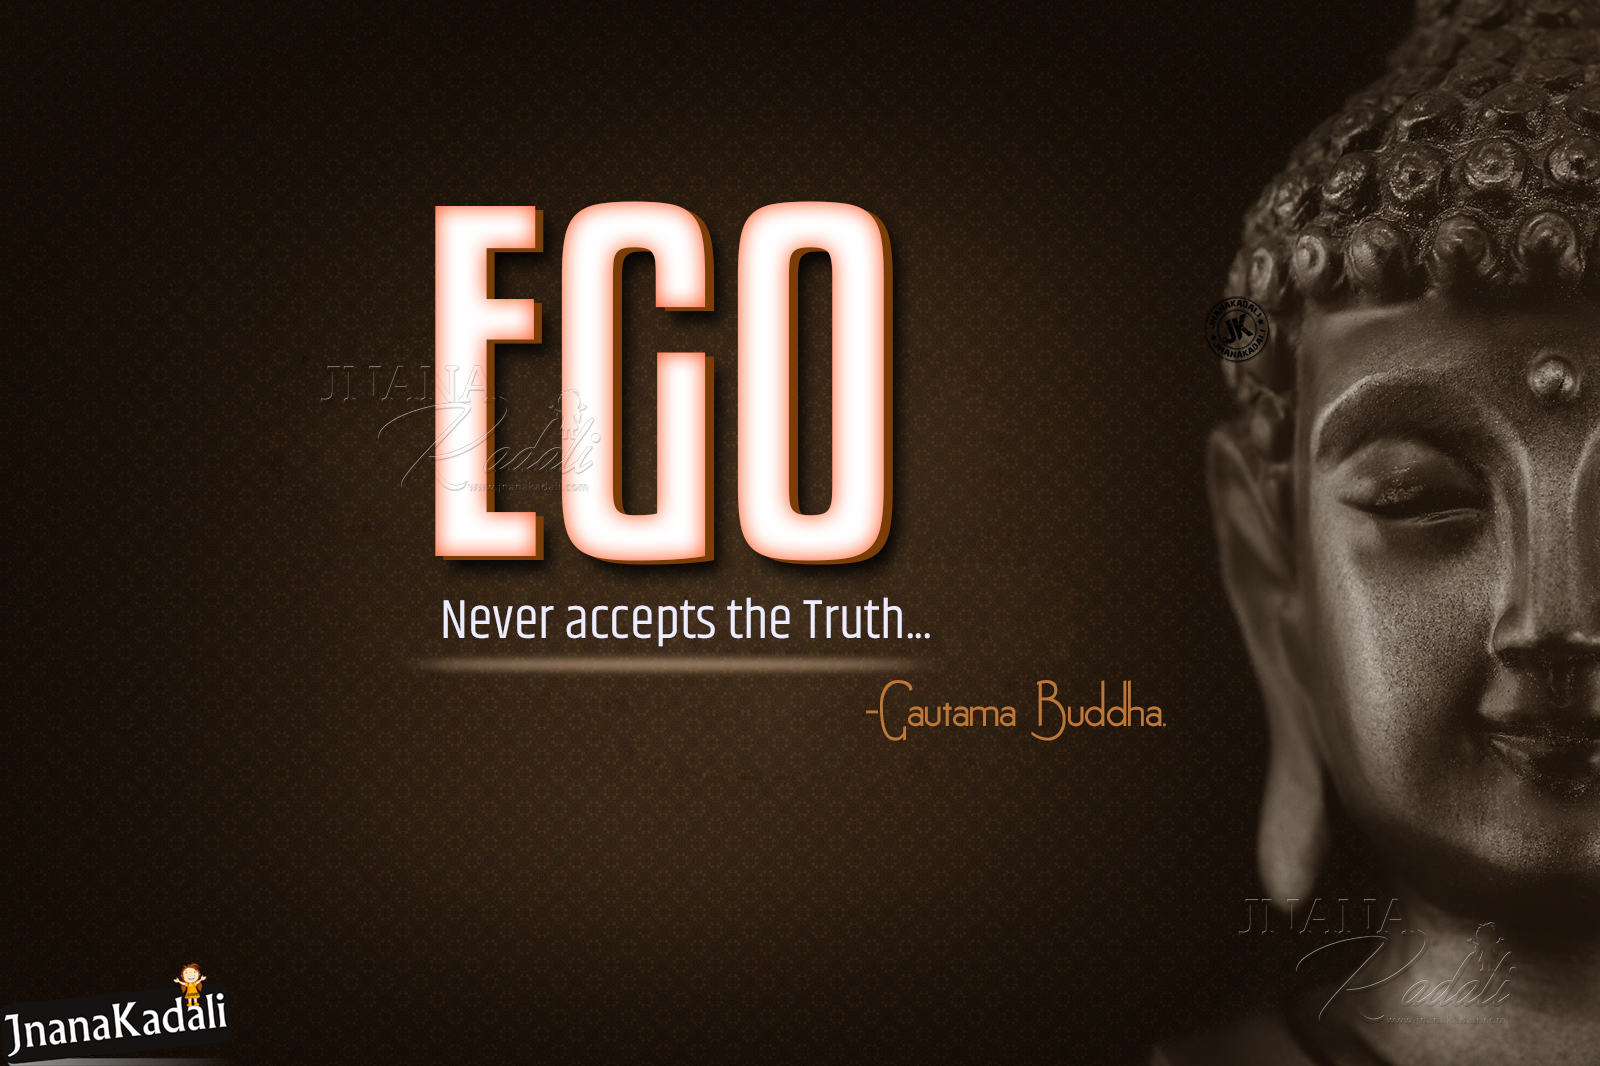 English Gautama Buddha Messages Quotes About Ego And Truth Jnana Kadali Com Telugu Quotes